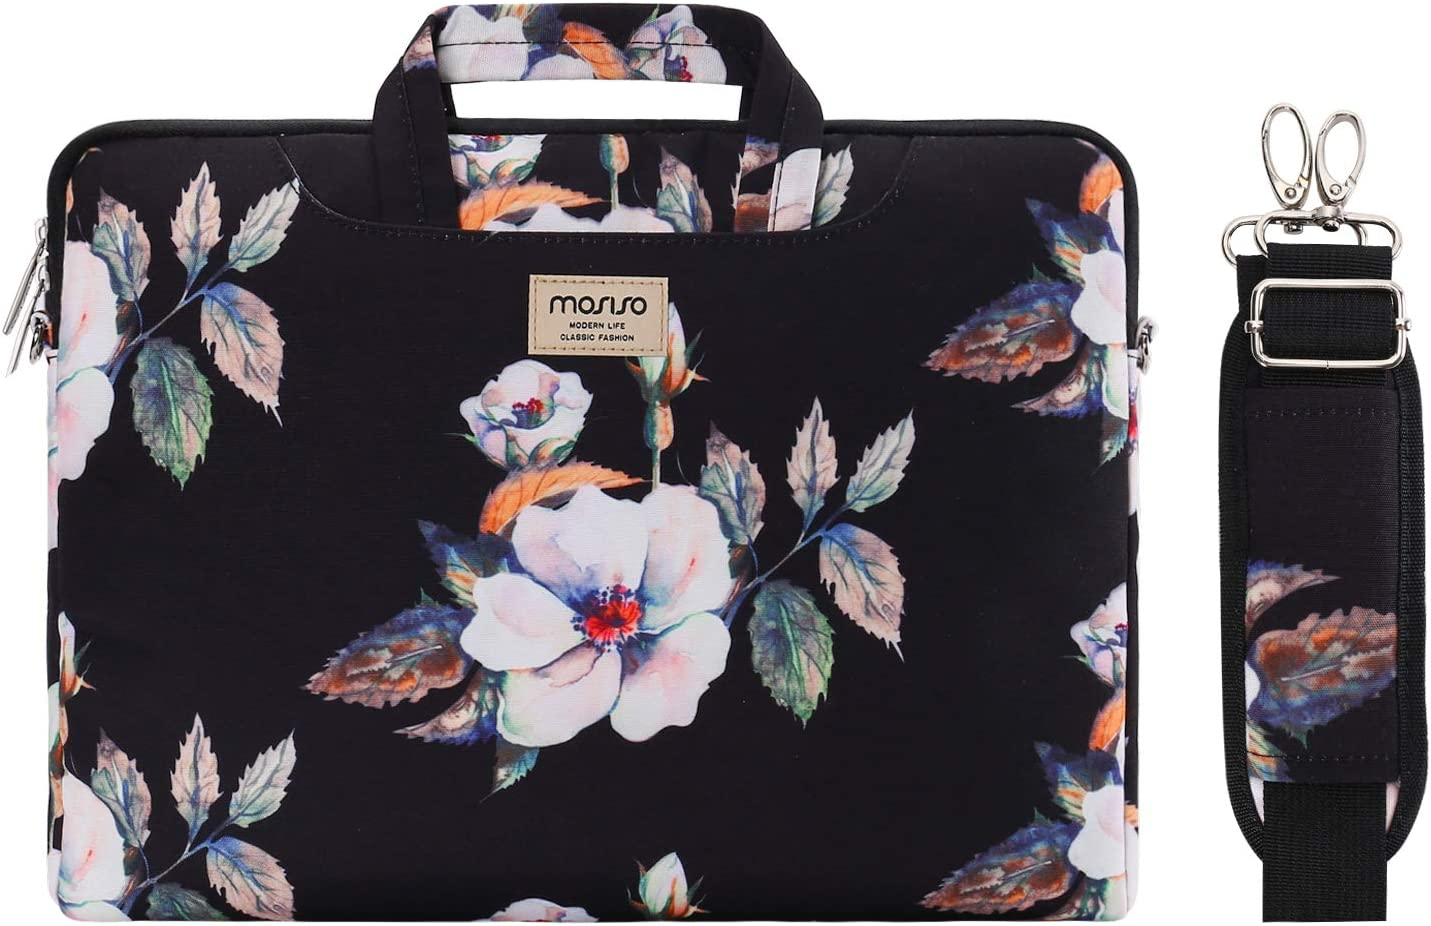 MOSISO Laptop Shoulder Bag Compatible with 2019 MacBook Pro 16 inch, 15 15.4 15.6 inch Dell Lenovo HP Asus Acer Samsung Sony Chromebook, Hibiscus Carrying Briefcase Sleeve Case with Trolley Belt